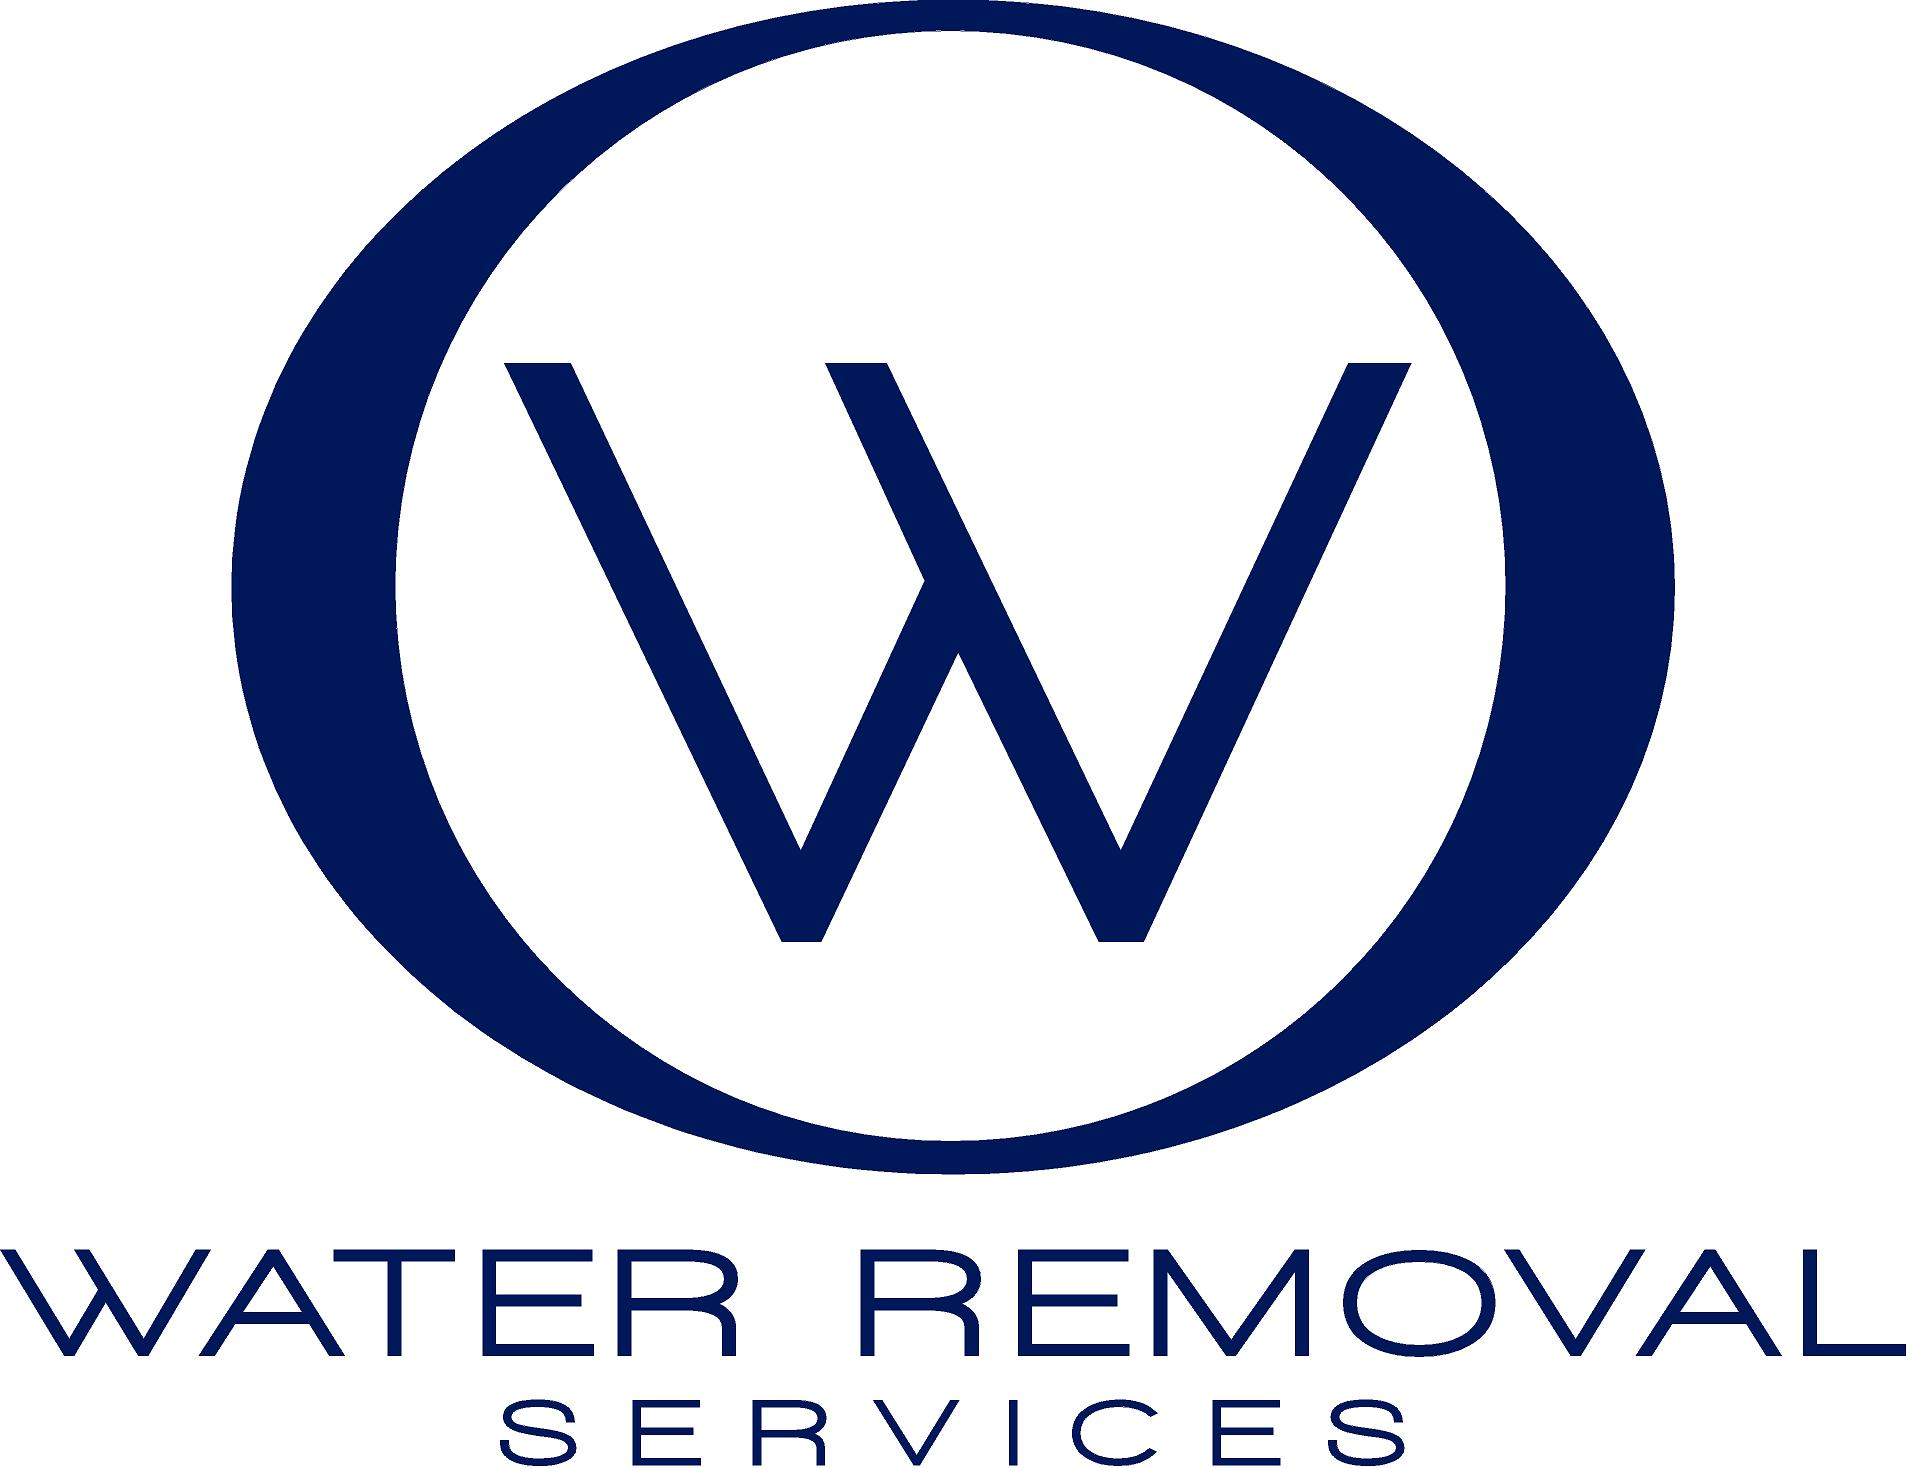 Water Removal Services Today